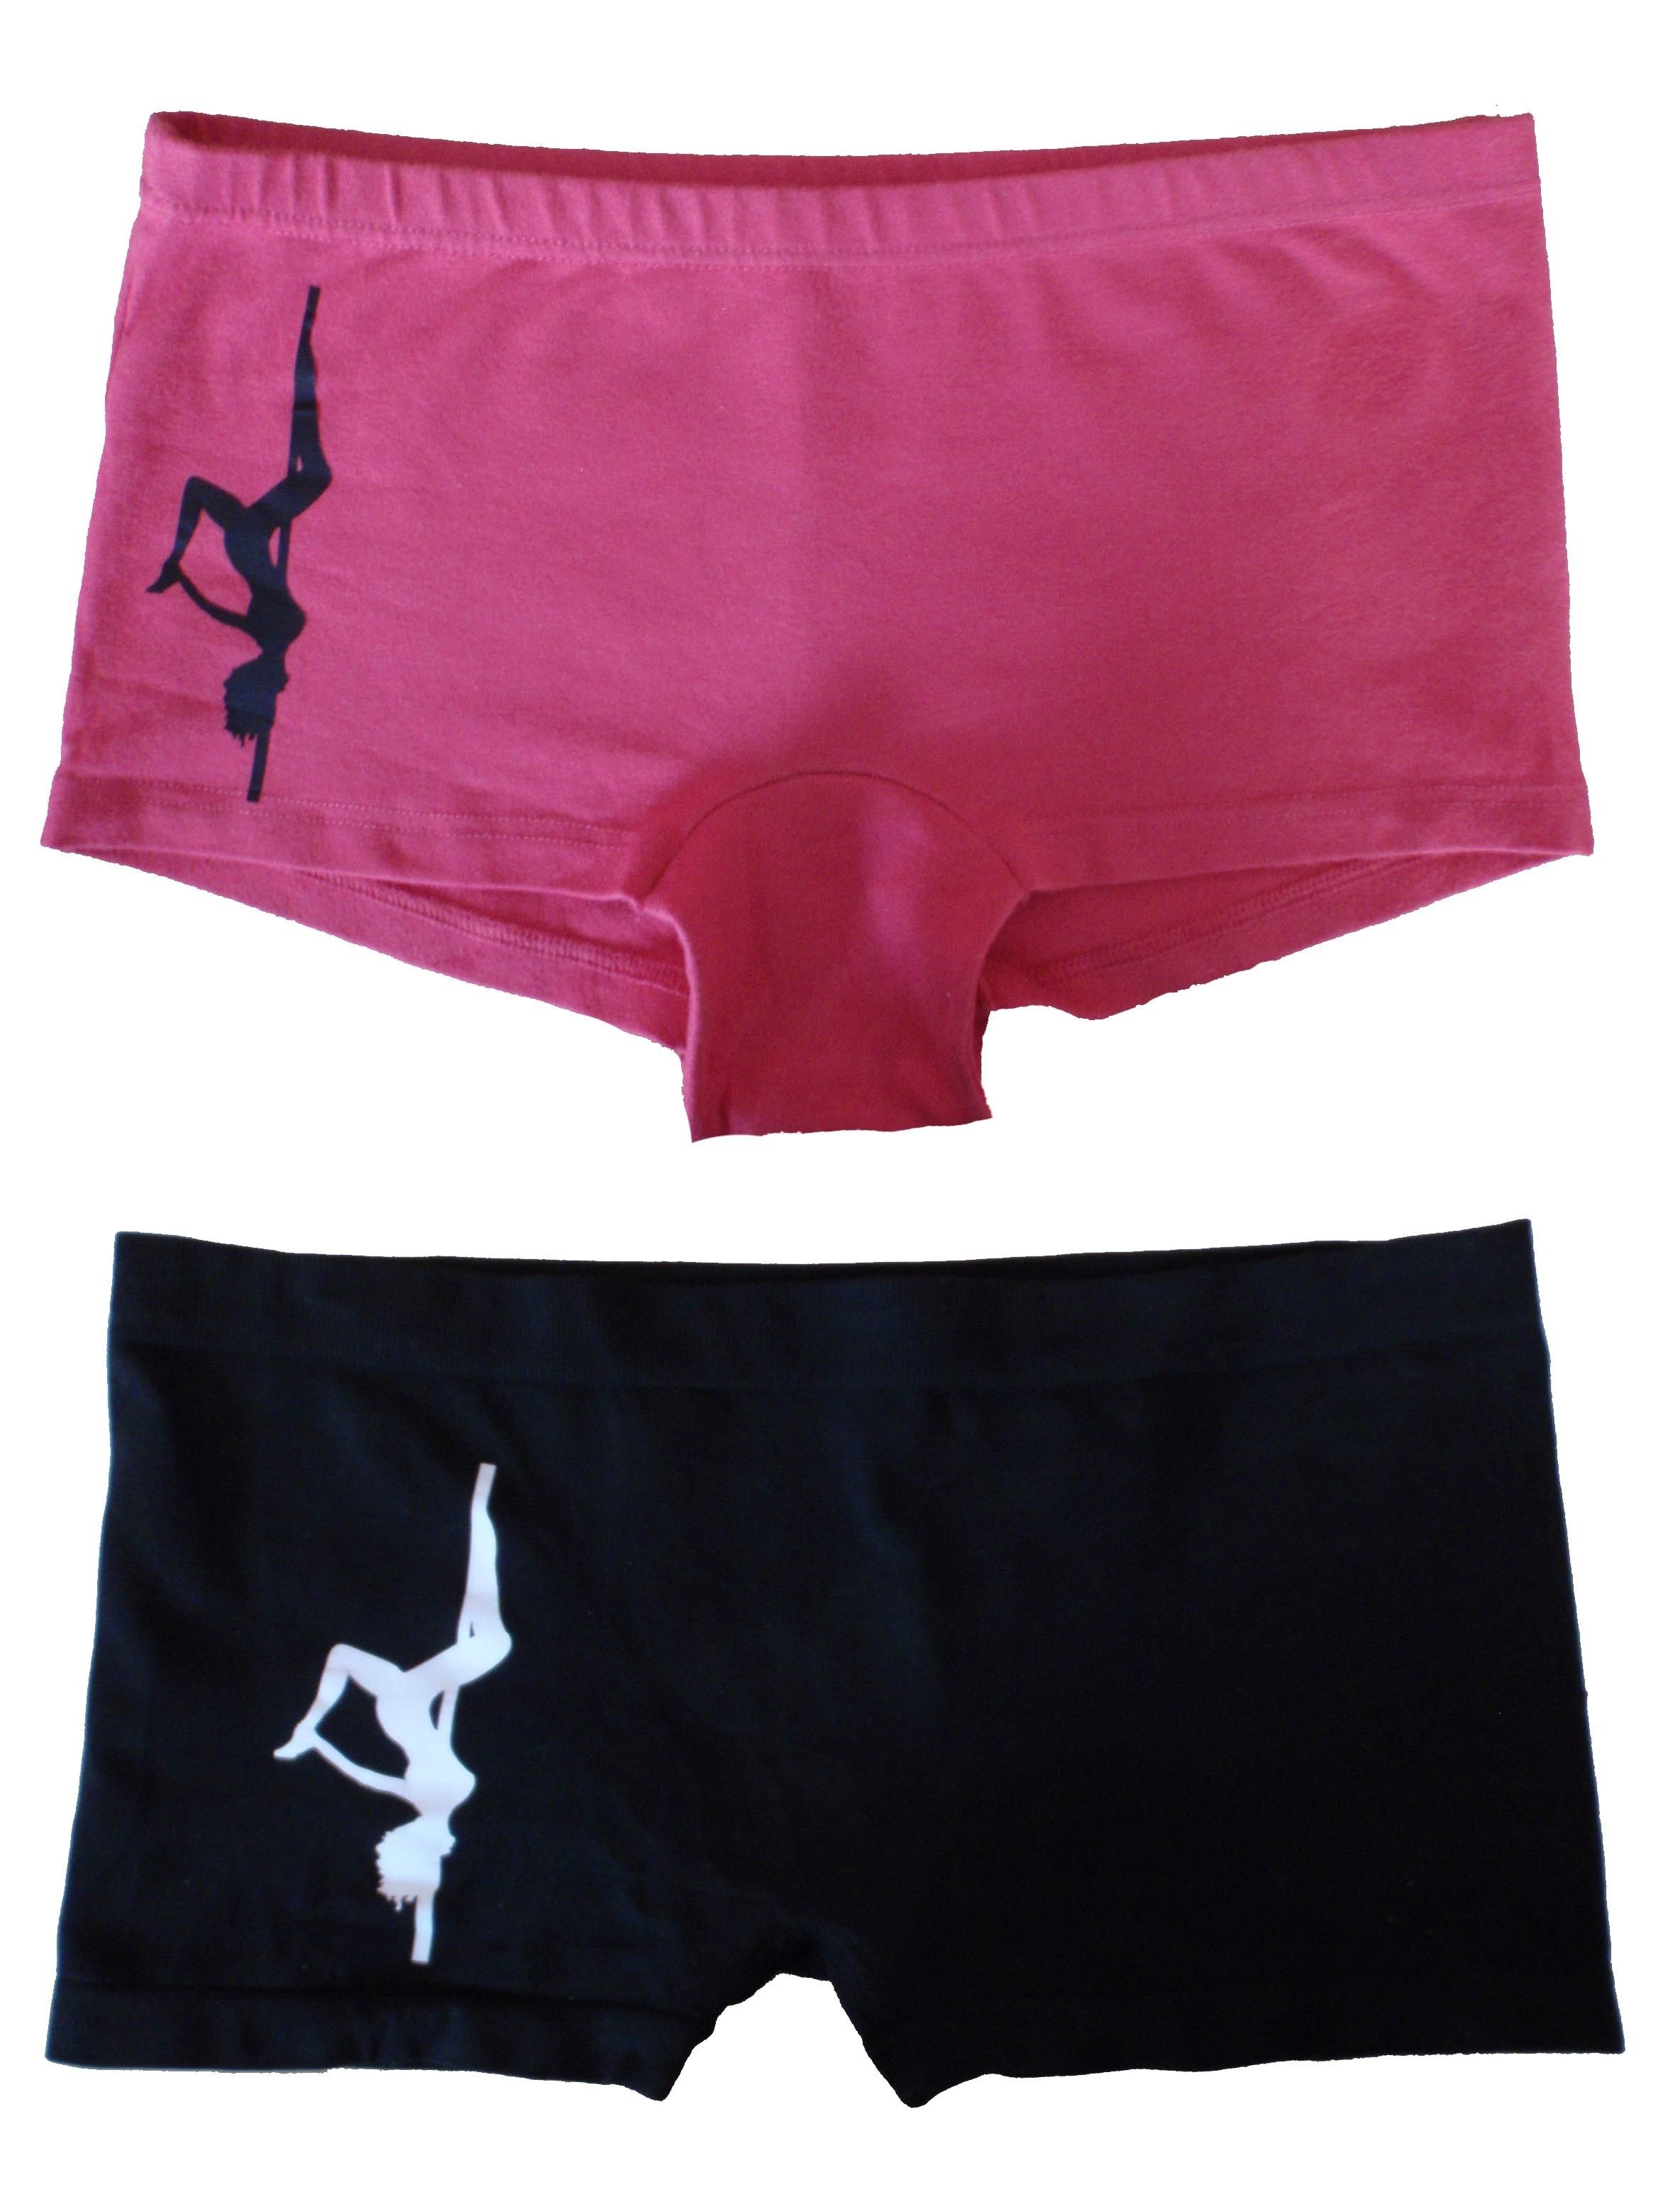 Pole Dance Clothing - sexy pants. So cute